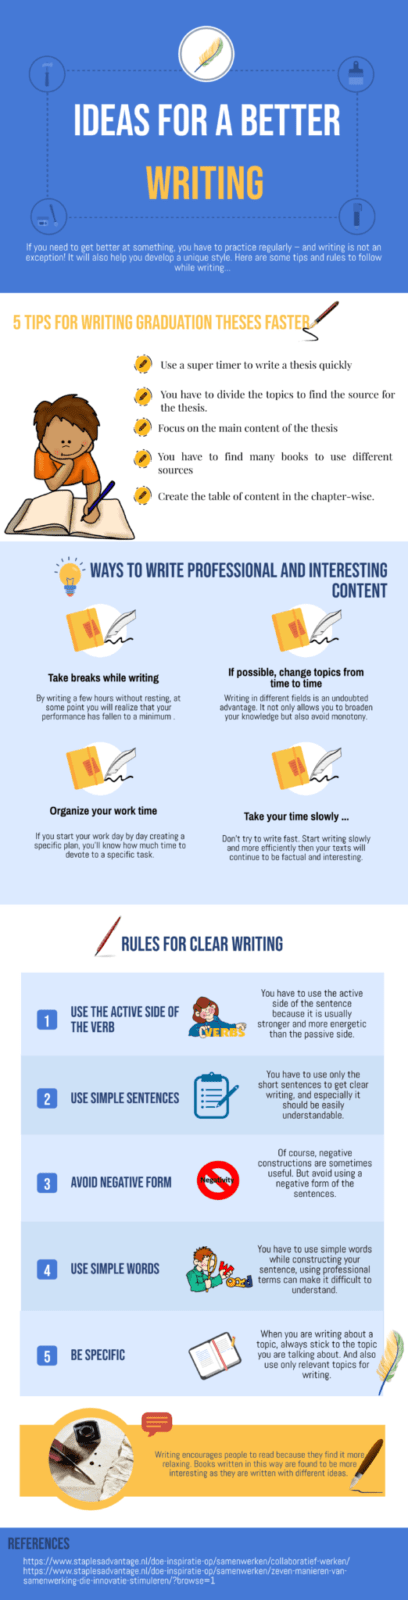 How to write excellent content for your website